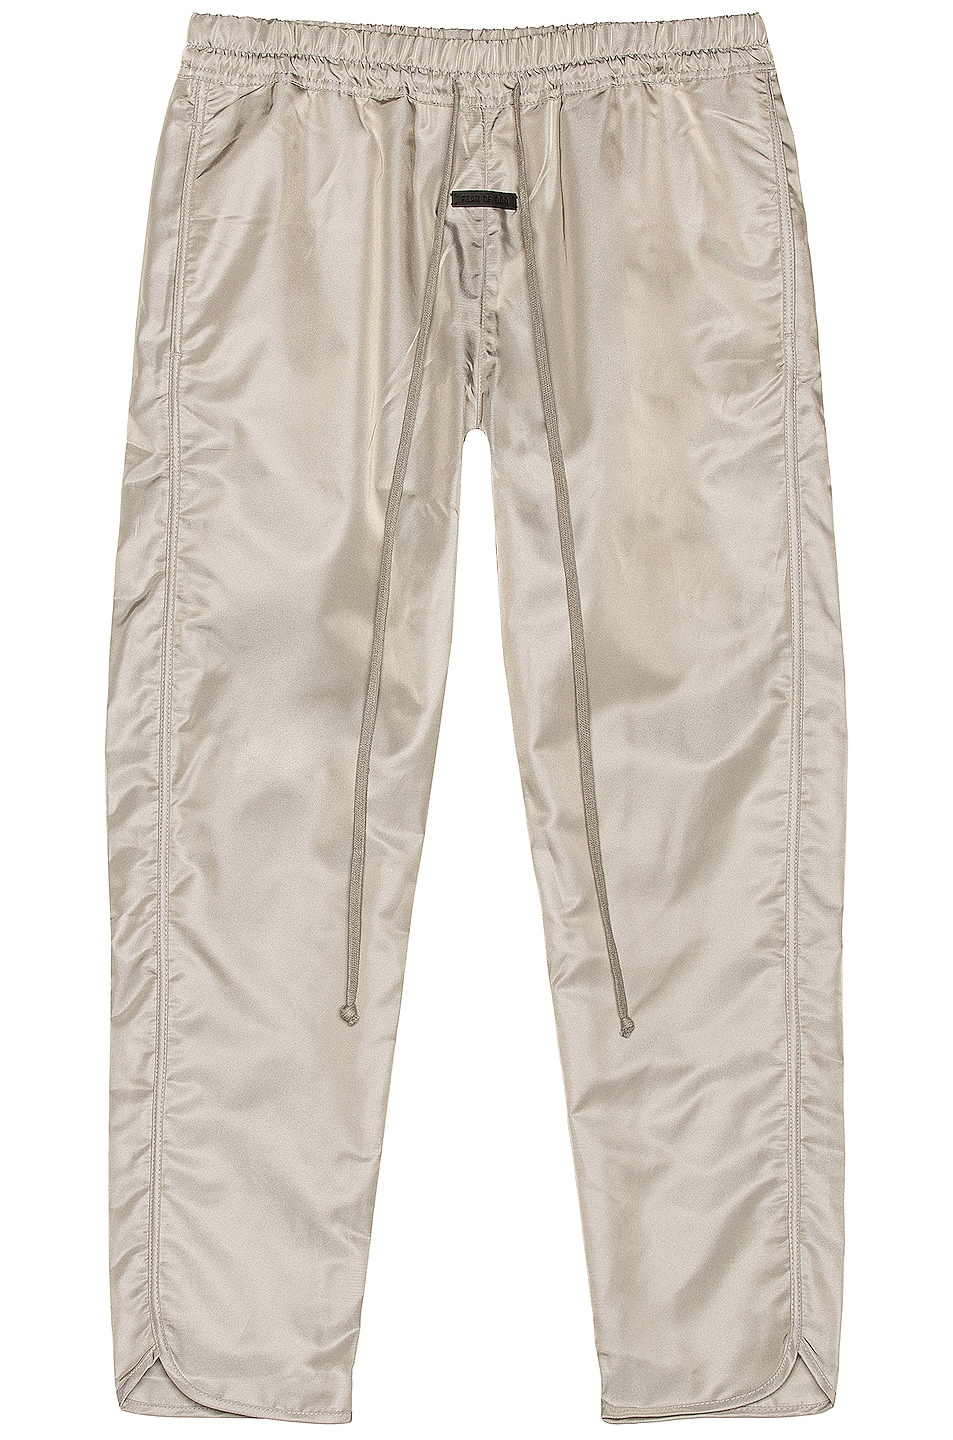 Image 1 of Fear of God Track Pant in Grey Iridescent